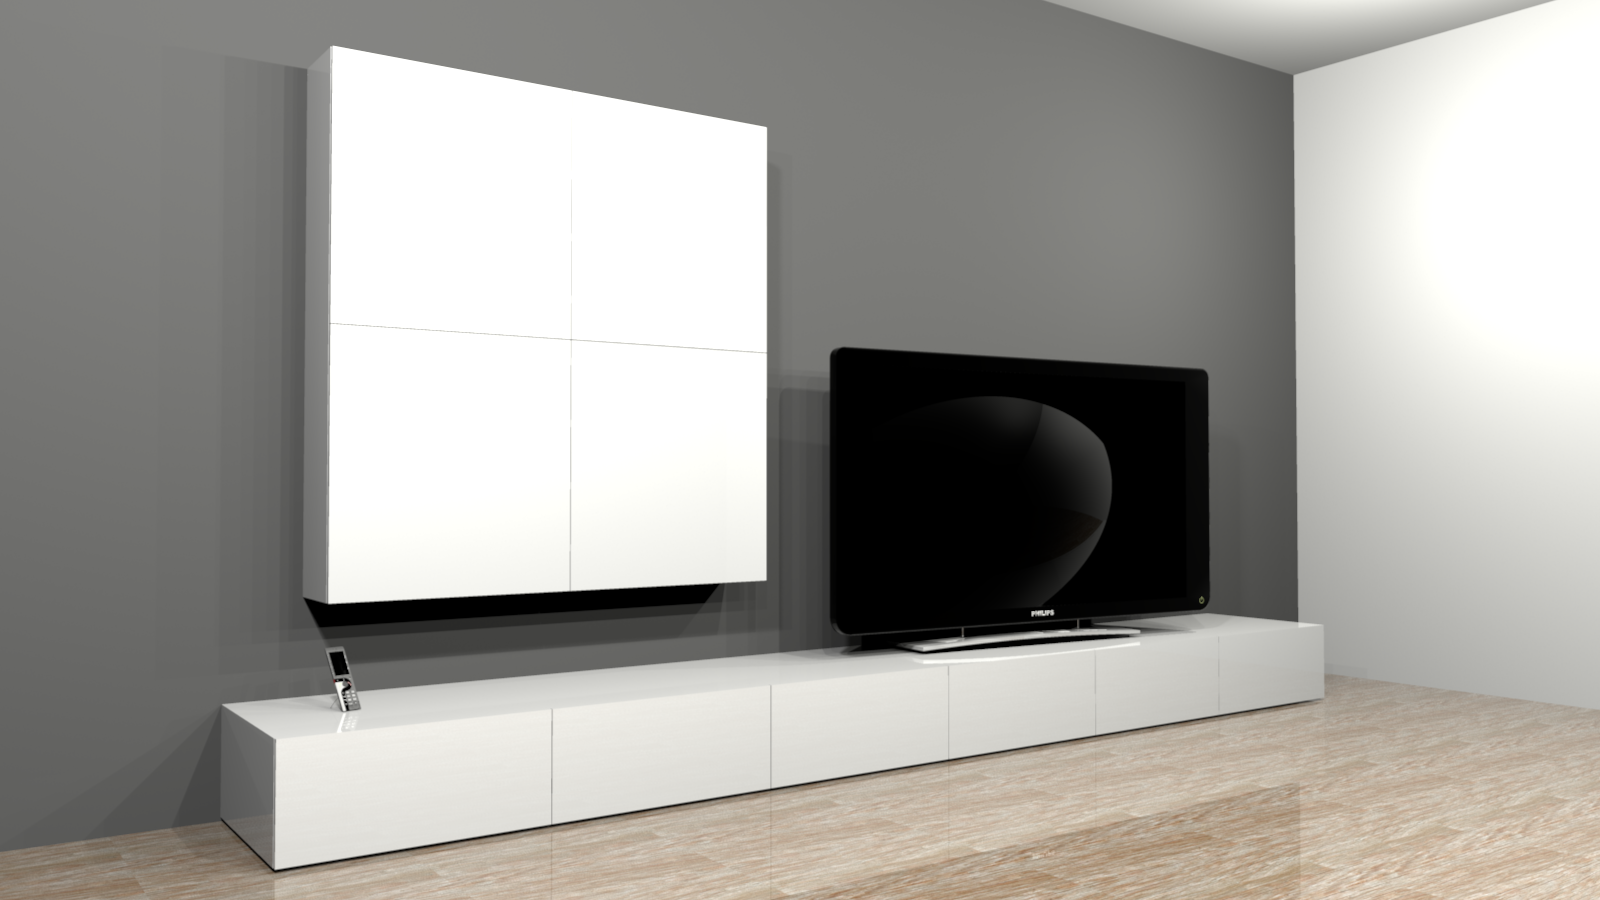 projet de cr ation de mobilier contemporain banc tv range cd mural. Black Bedroom Furniture Sets. Home Design Ideas